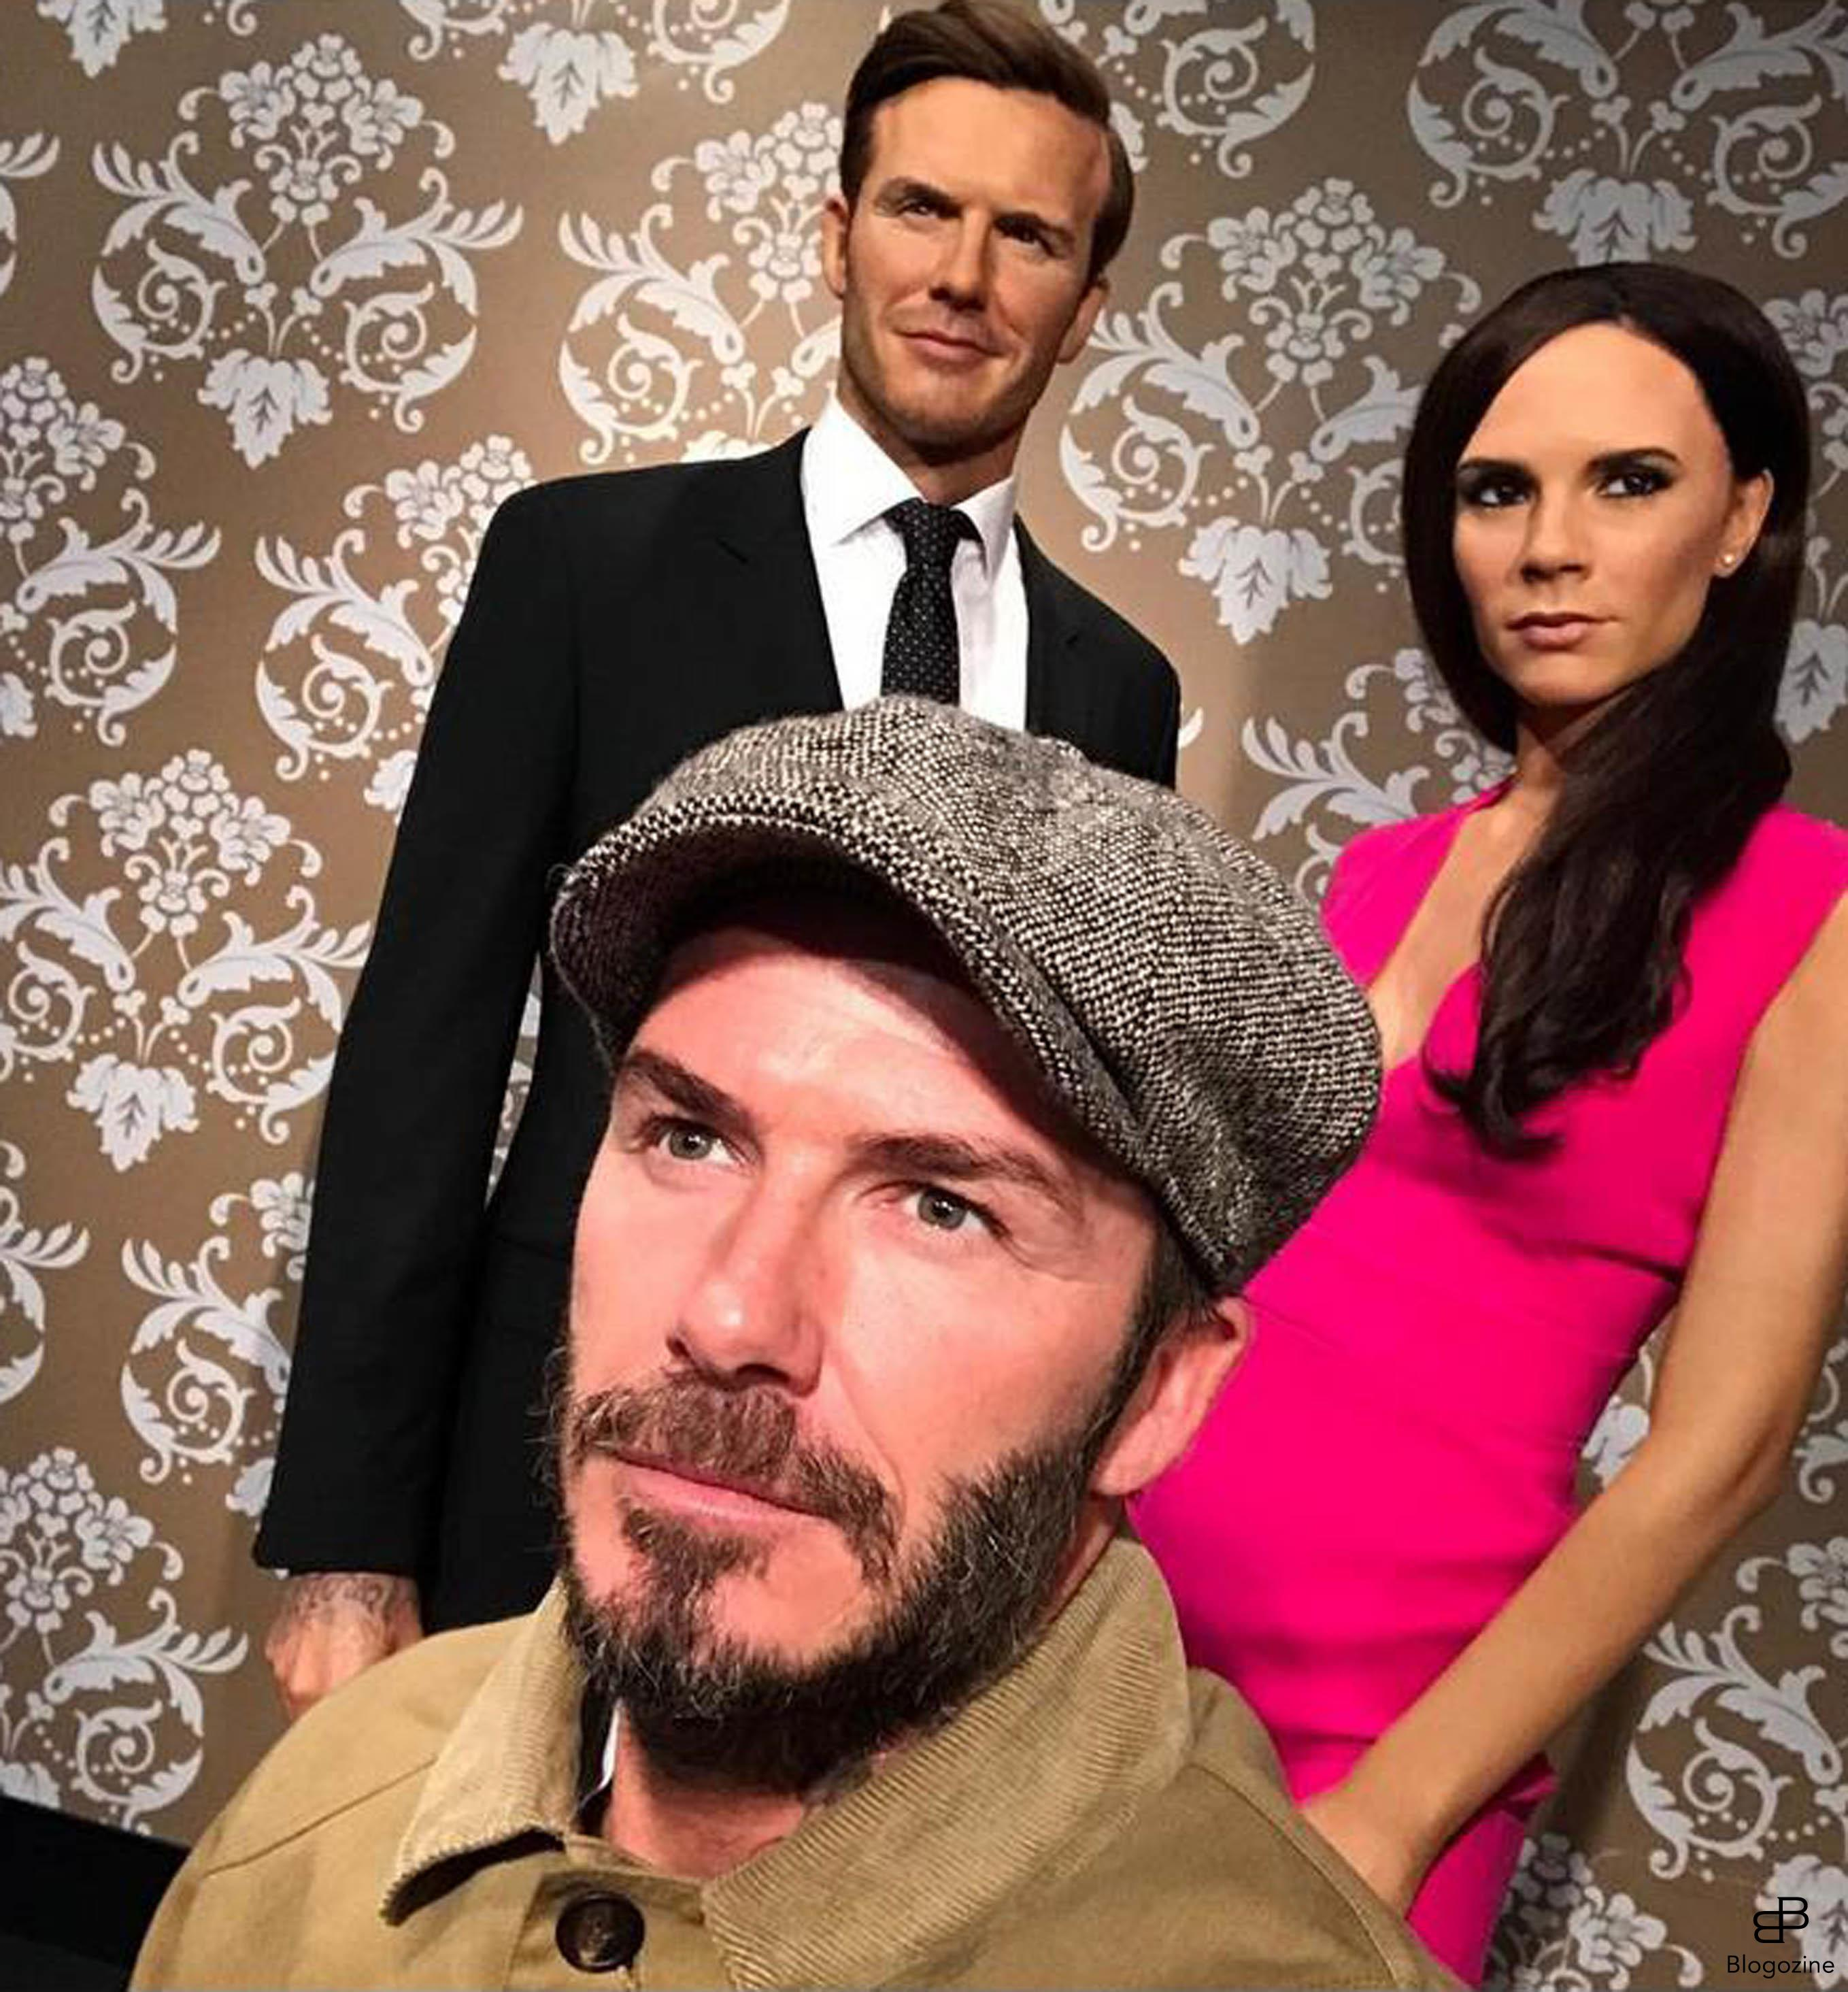 6334026 10-10-2016 Celebrity Selfies Pictured: David Beckham PLANET PHOTOS www.planetphotos.co.uk info@planetphotos.co.uk +44 (0)20 8883 1438 DISTR. STELLA PICTURES